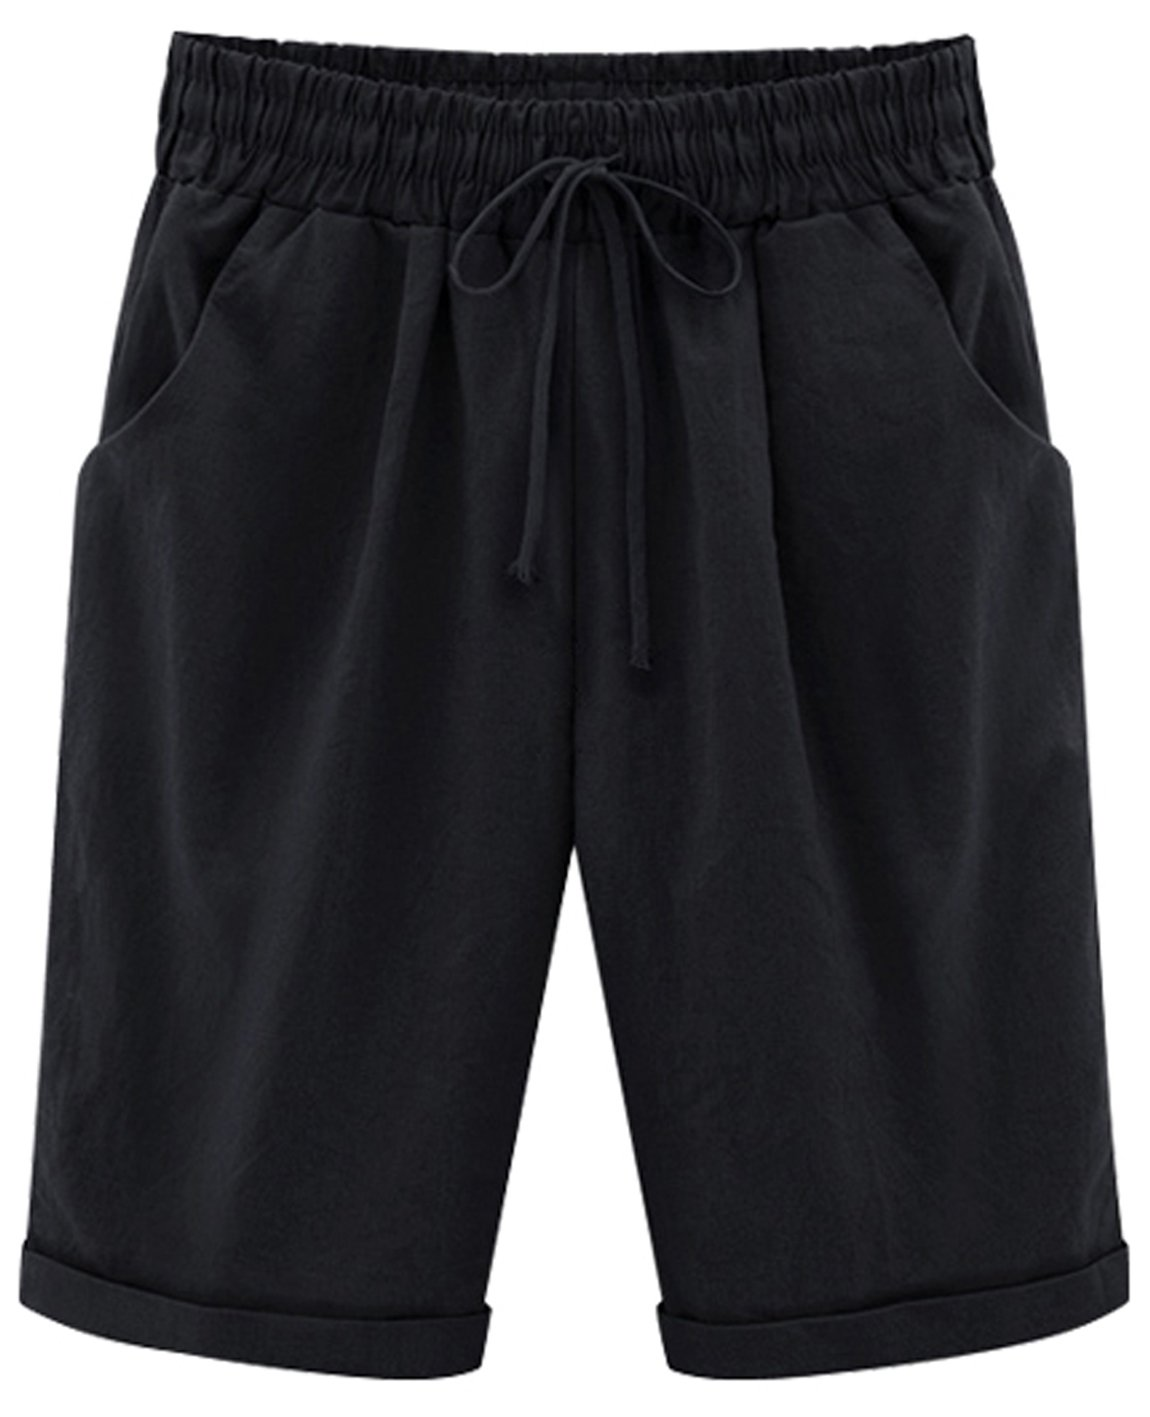 HOW'ON Women's Casual Elastic Waist Knee-Length Curling Bermuda Shorts with Drawstring Black M